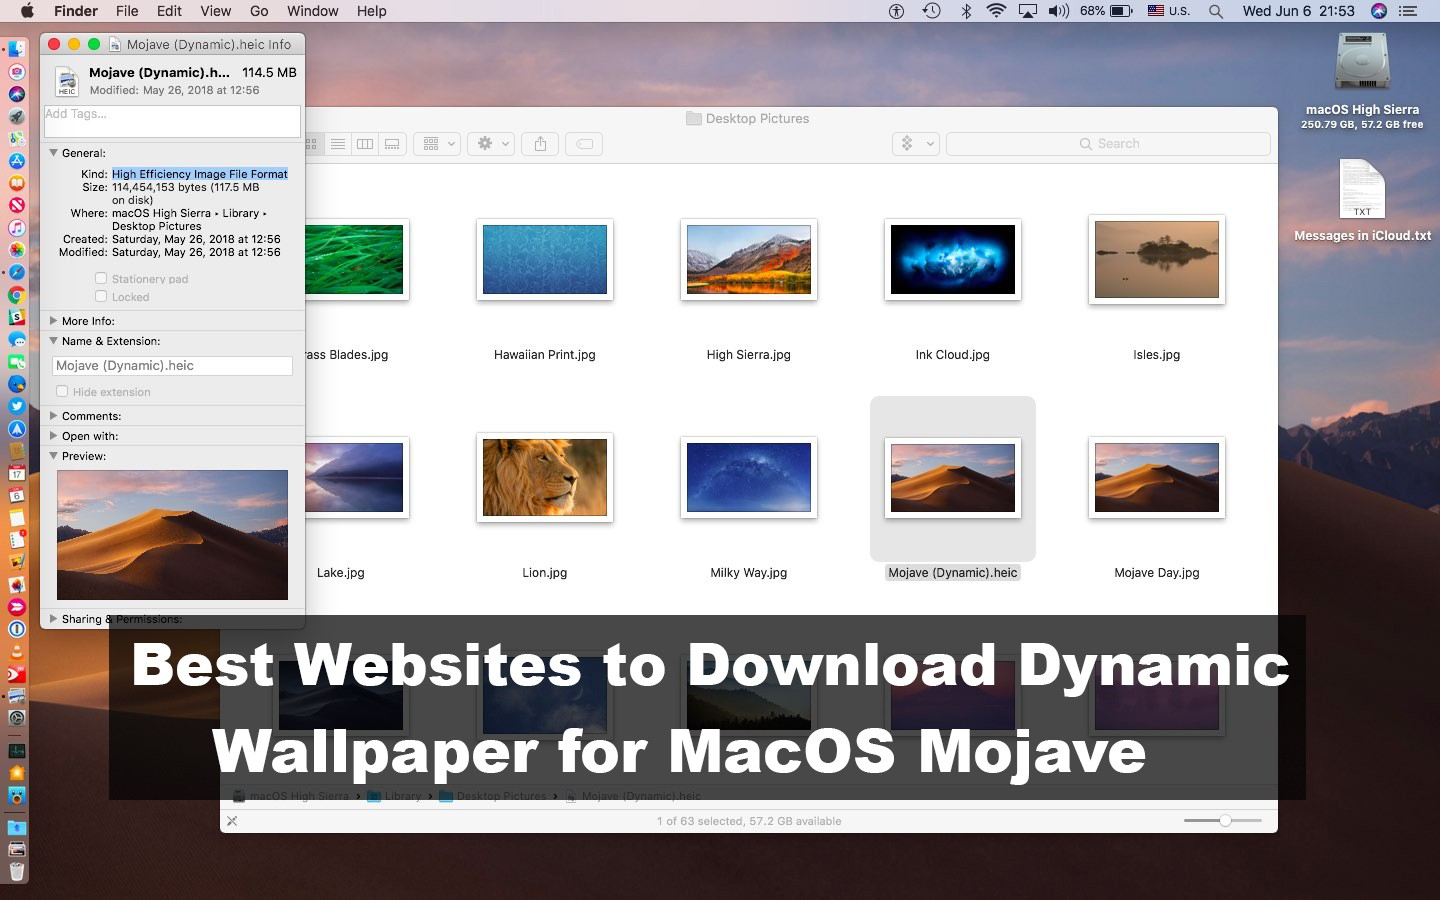 Best Websites To Download Dynamic Wallpaper For Macos